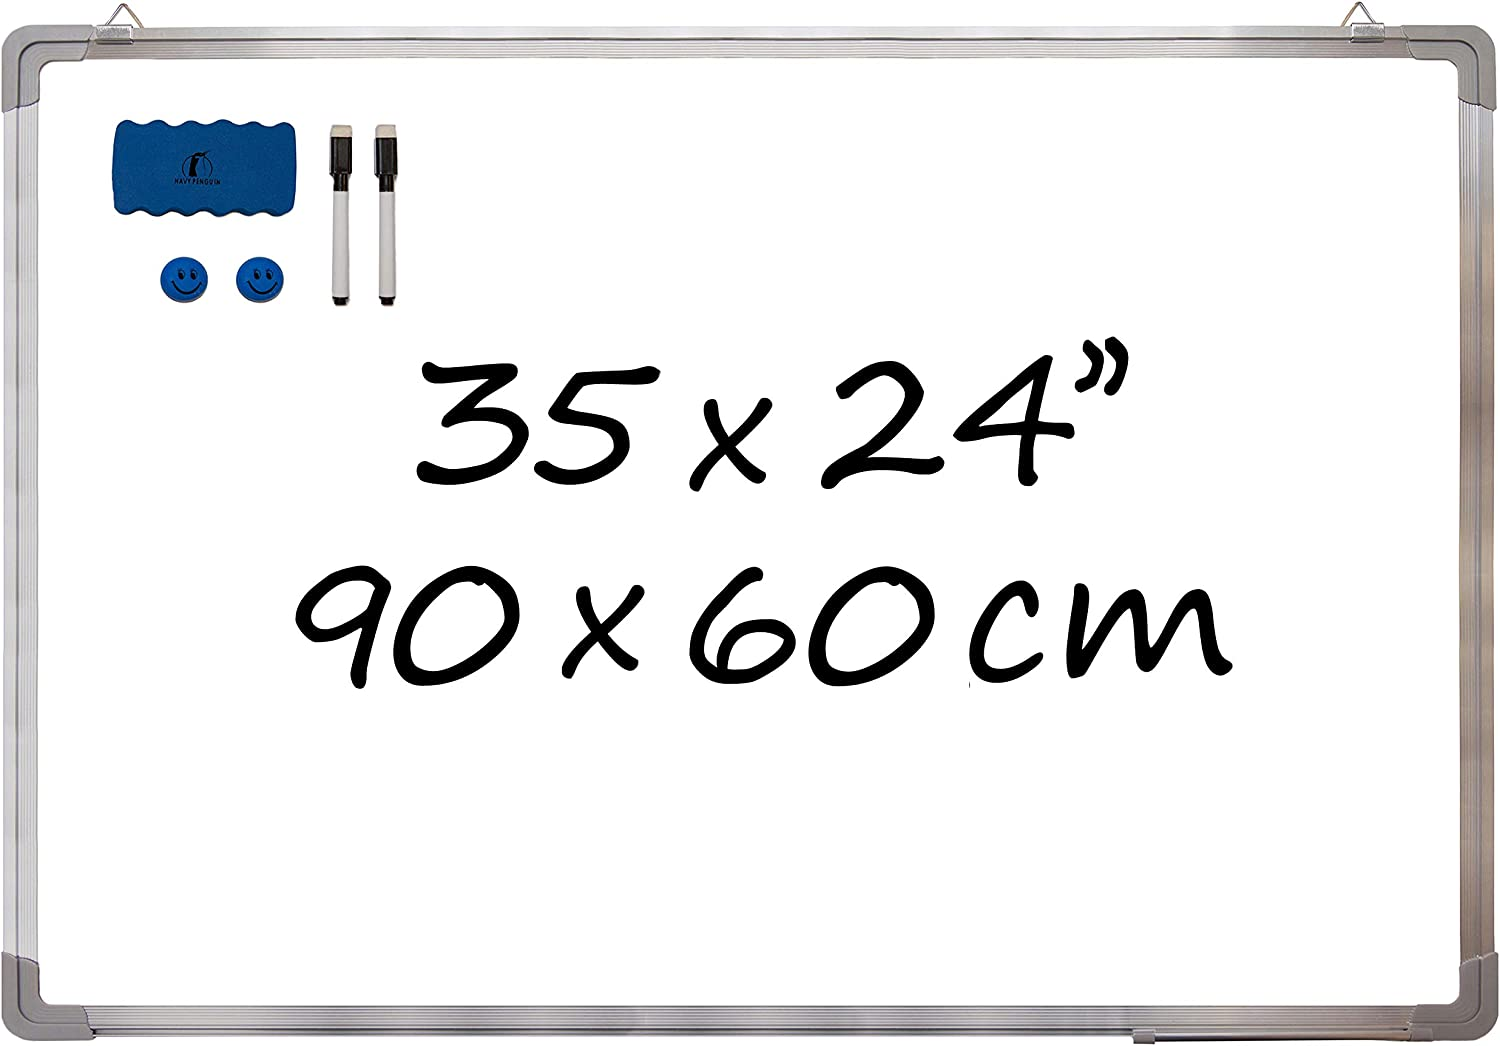 "Whiteboard Set (Various Sizes) - 35 x 24 in Dry Erase Board + 1 Magnetic Eraser, 2 Black Markers and 2 Magnets - Large White Wall Hanging Message Dry Wipe Board for Office and Home (35x24"" Landscape)"